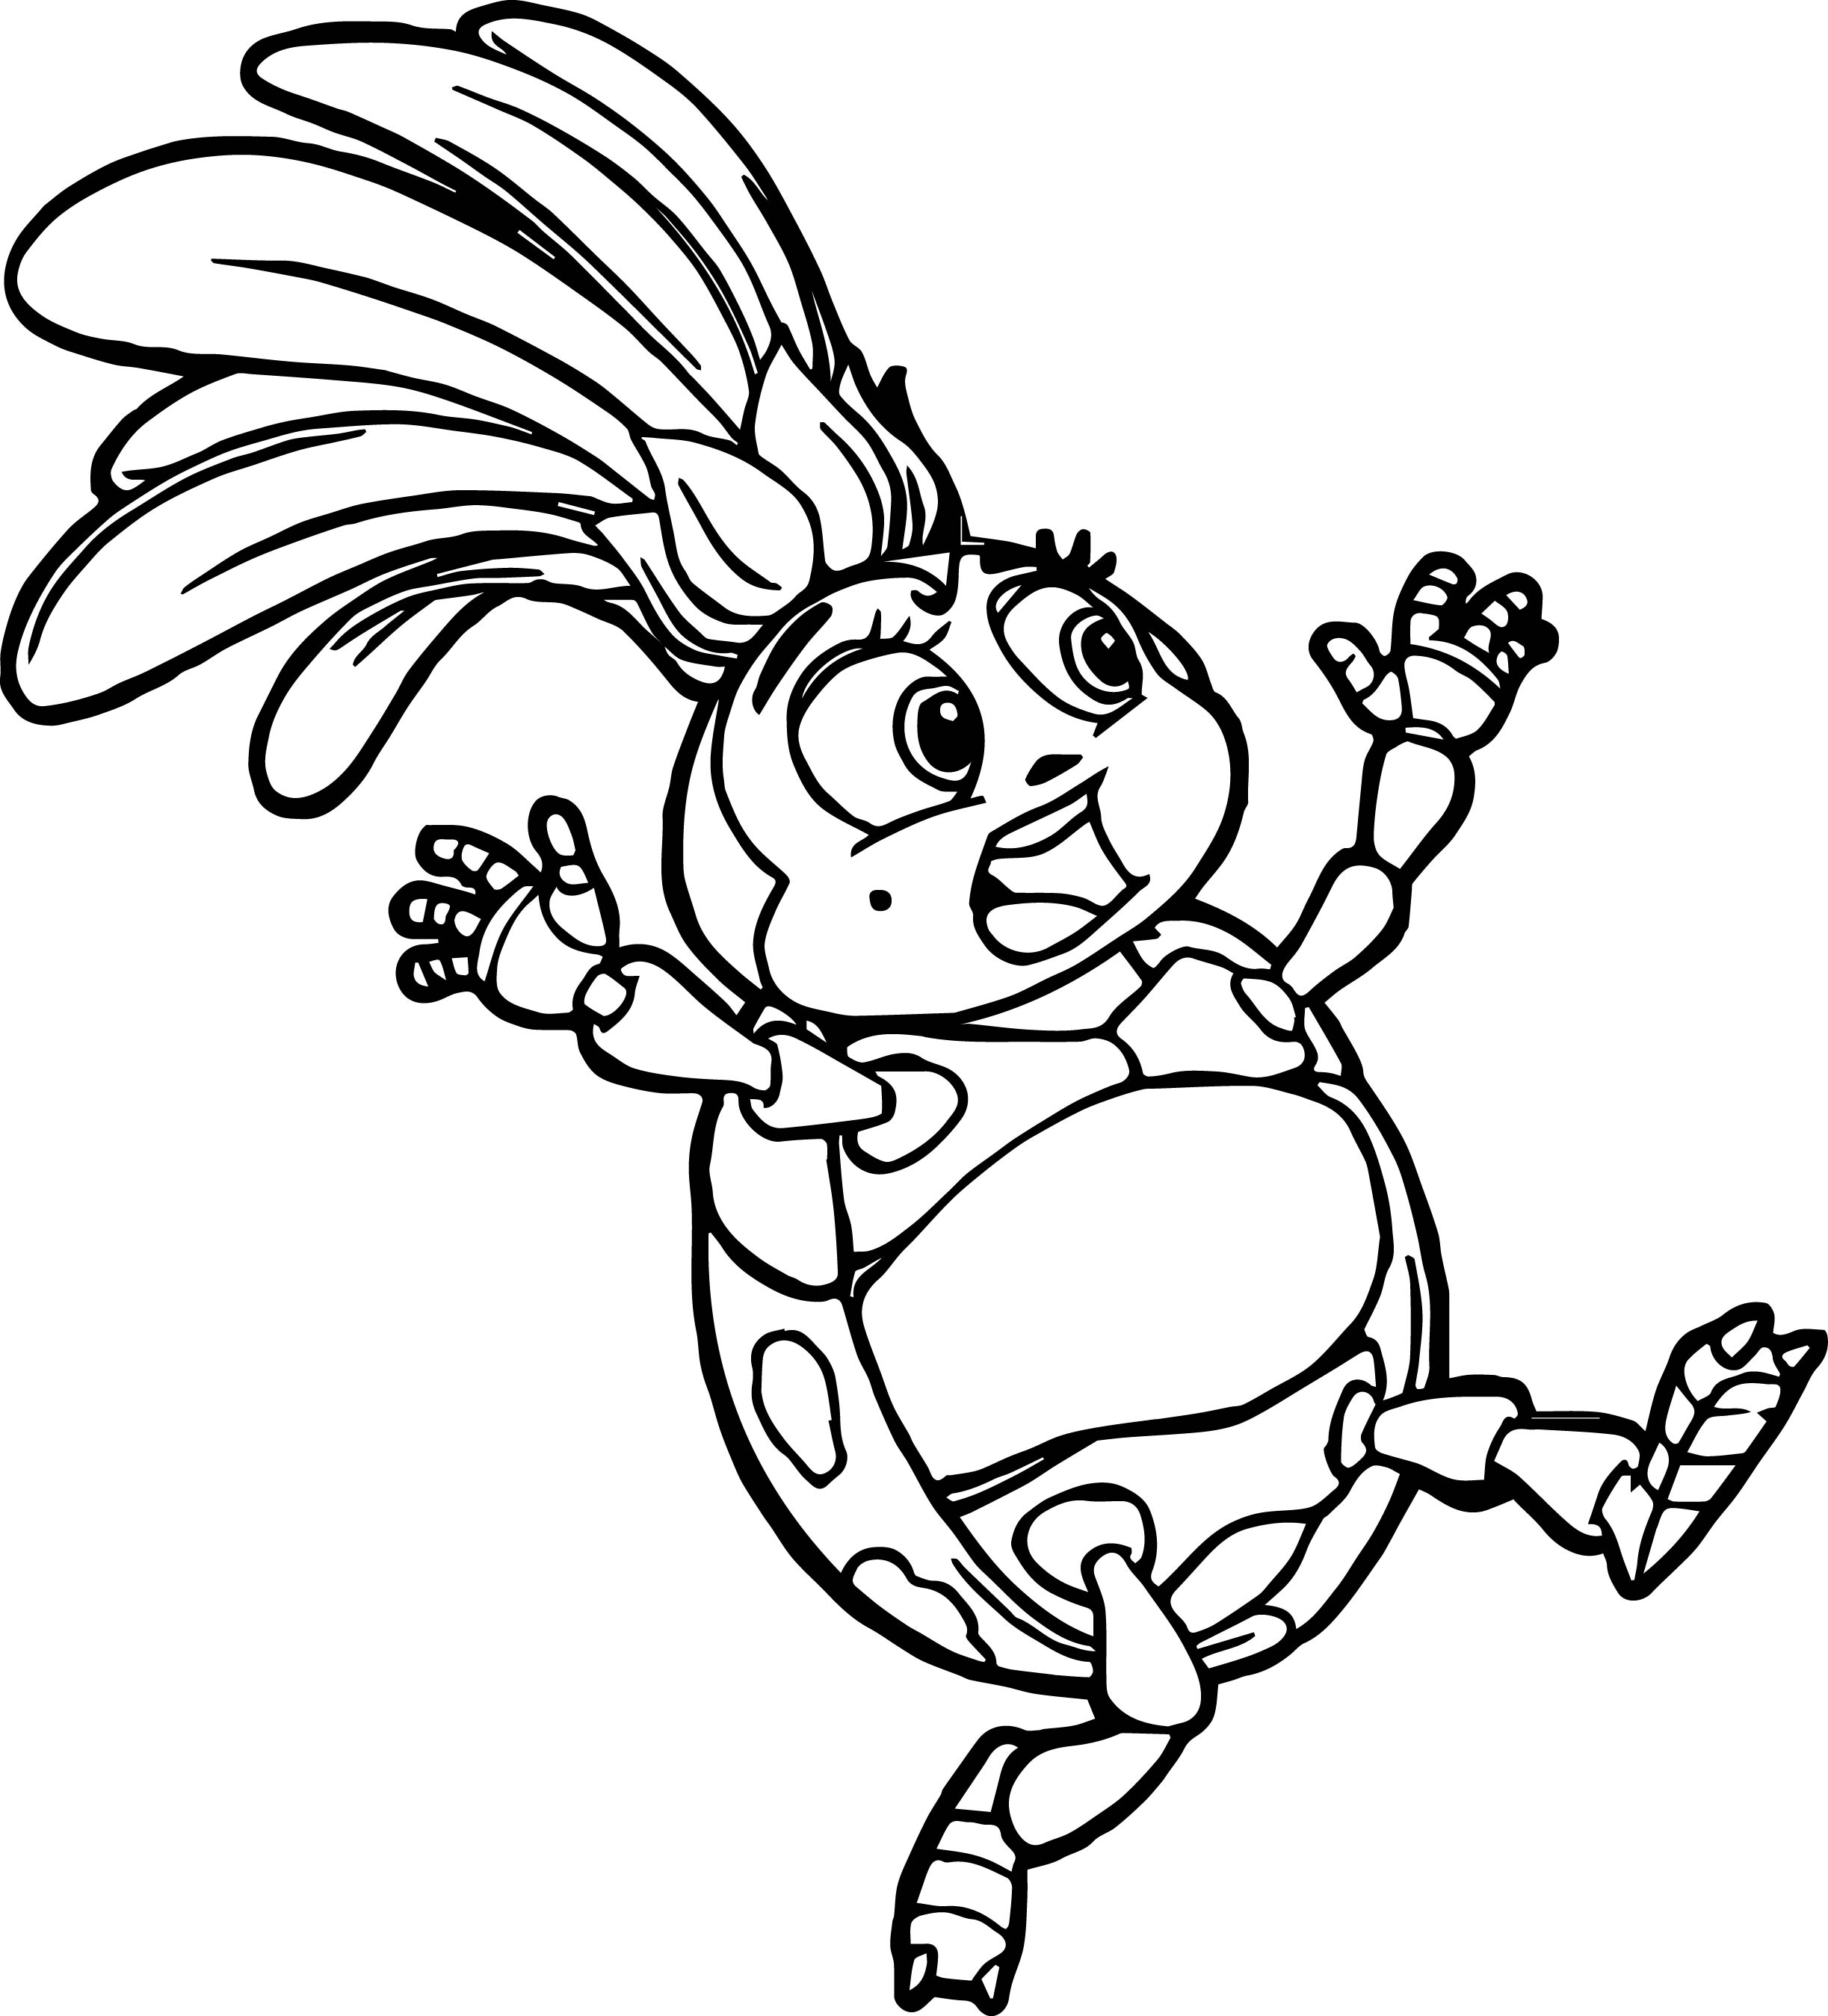 Coloring pages ladybug - Francis Ladybug Coloring Page